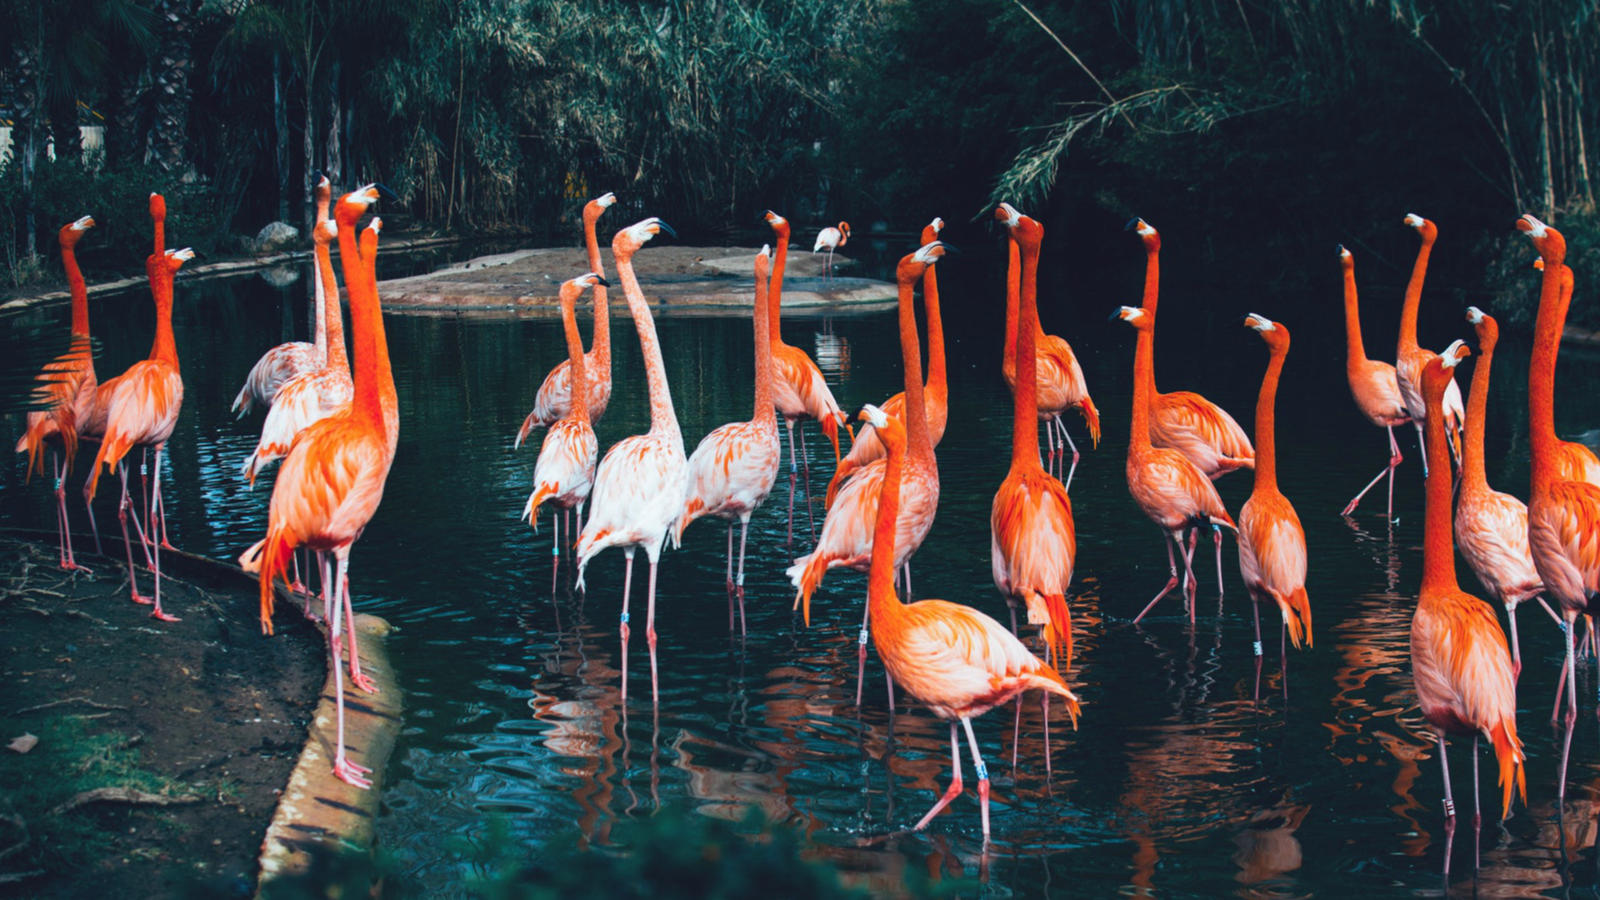 A crowd of flamingos in Barcelona, Image: Msh Foto, Unsplash